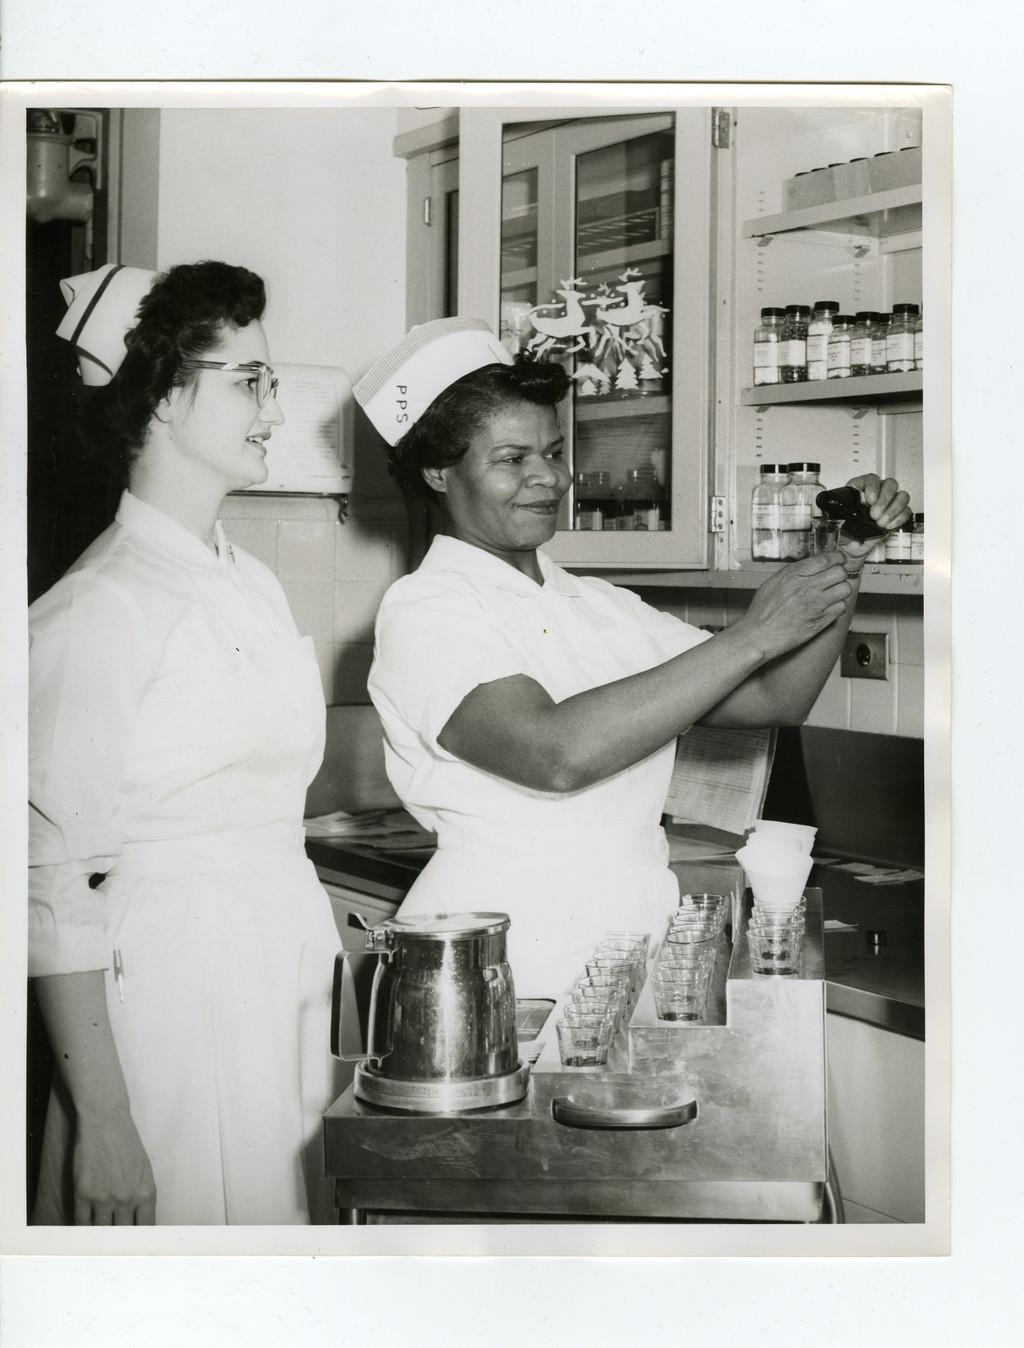 An instructor shows a practical nurse student how to pour medication, c. 1958